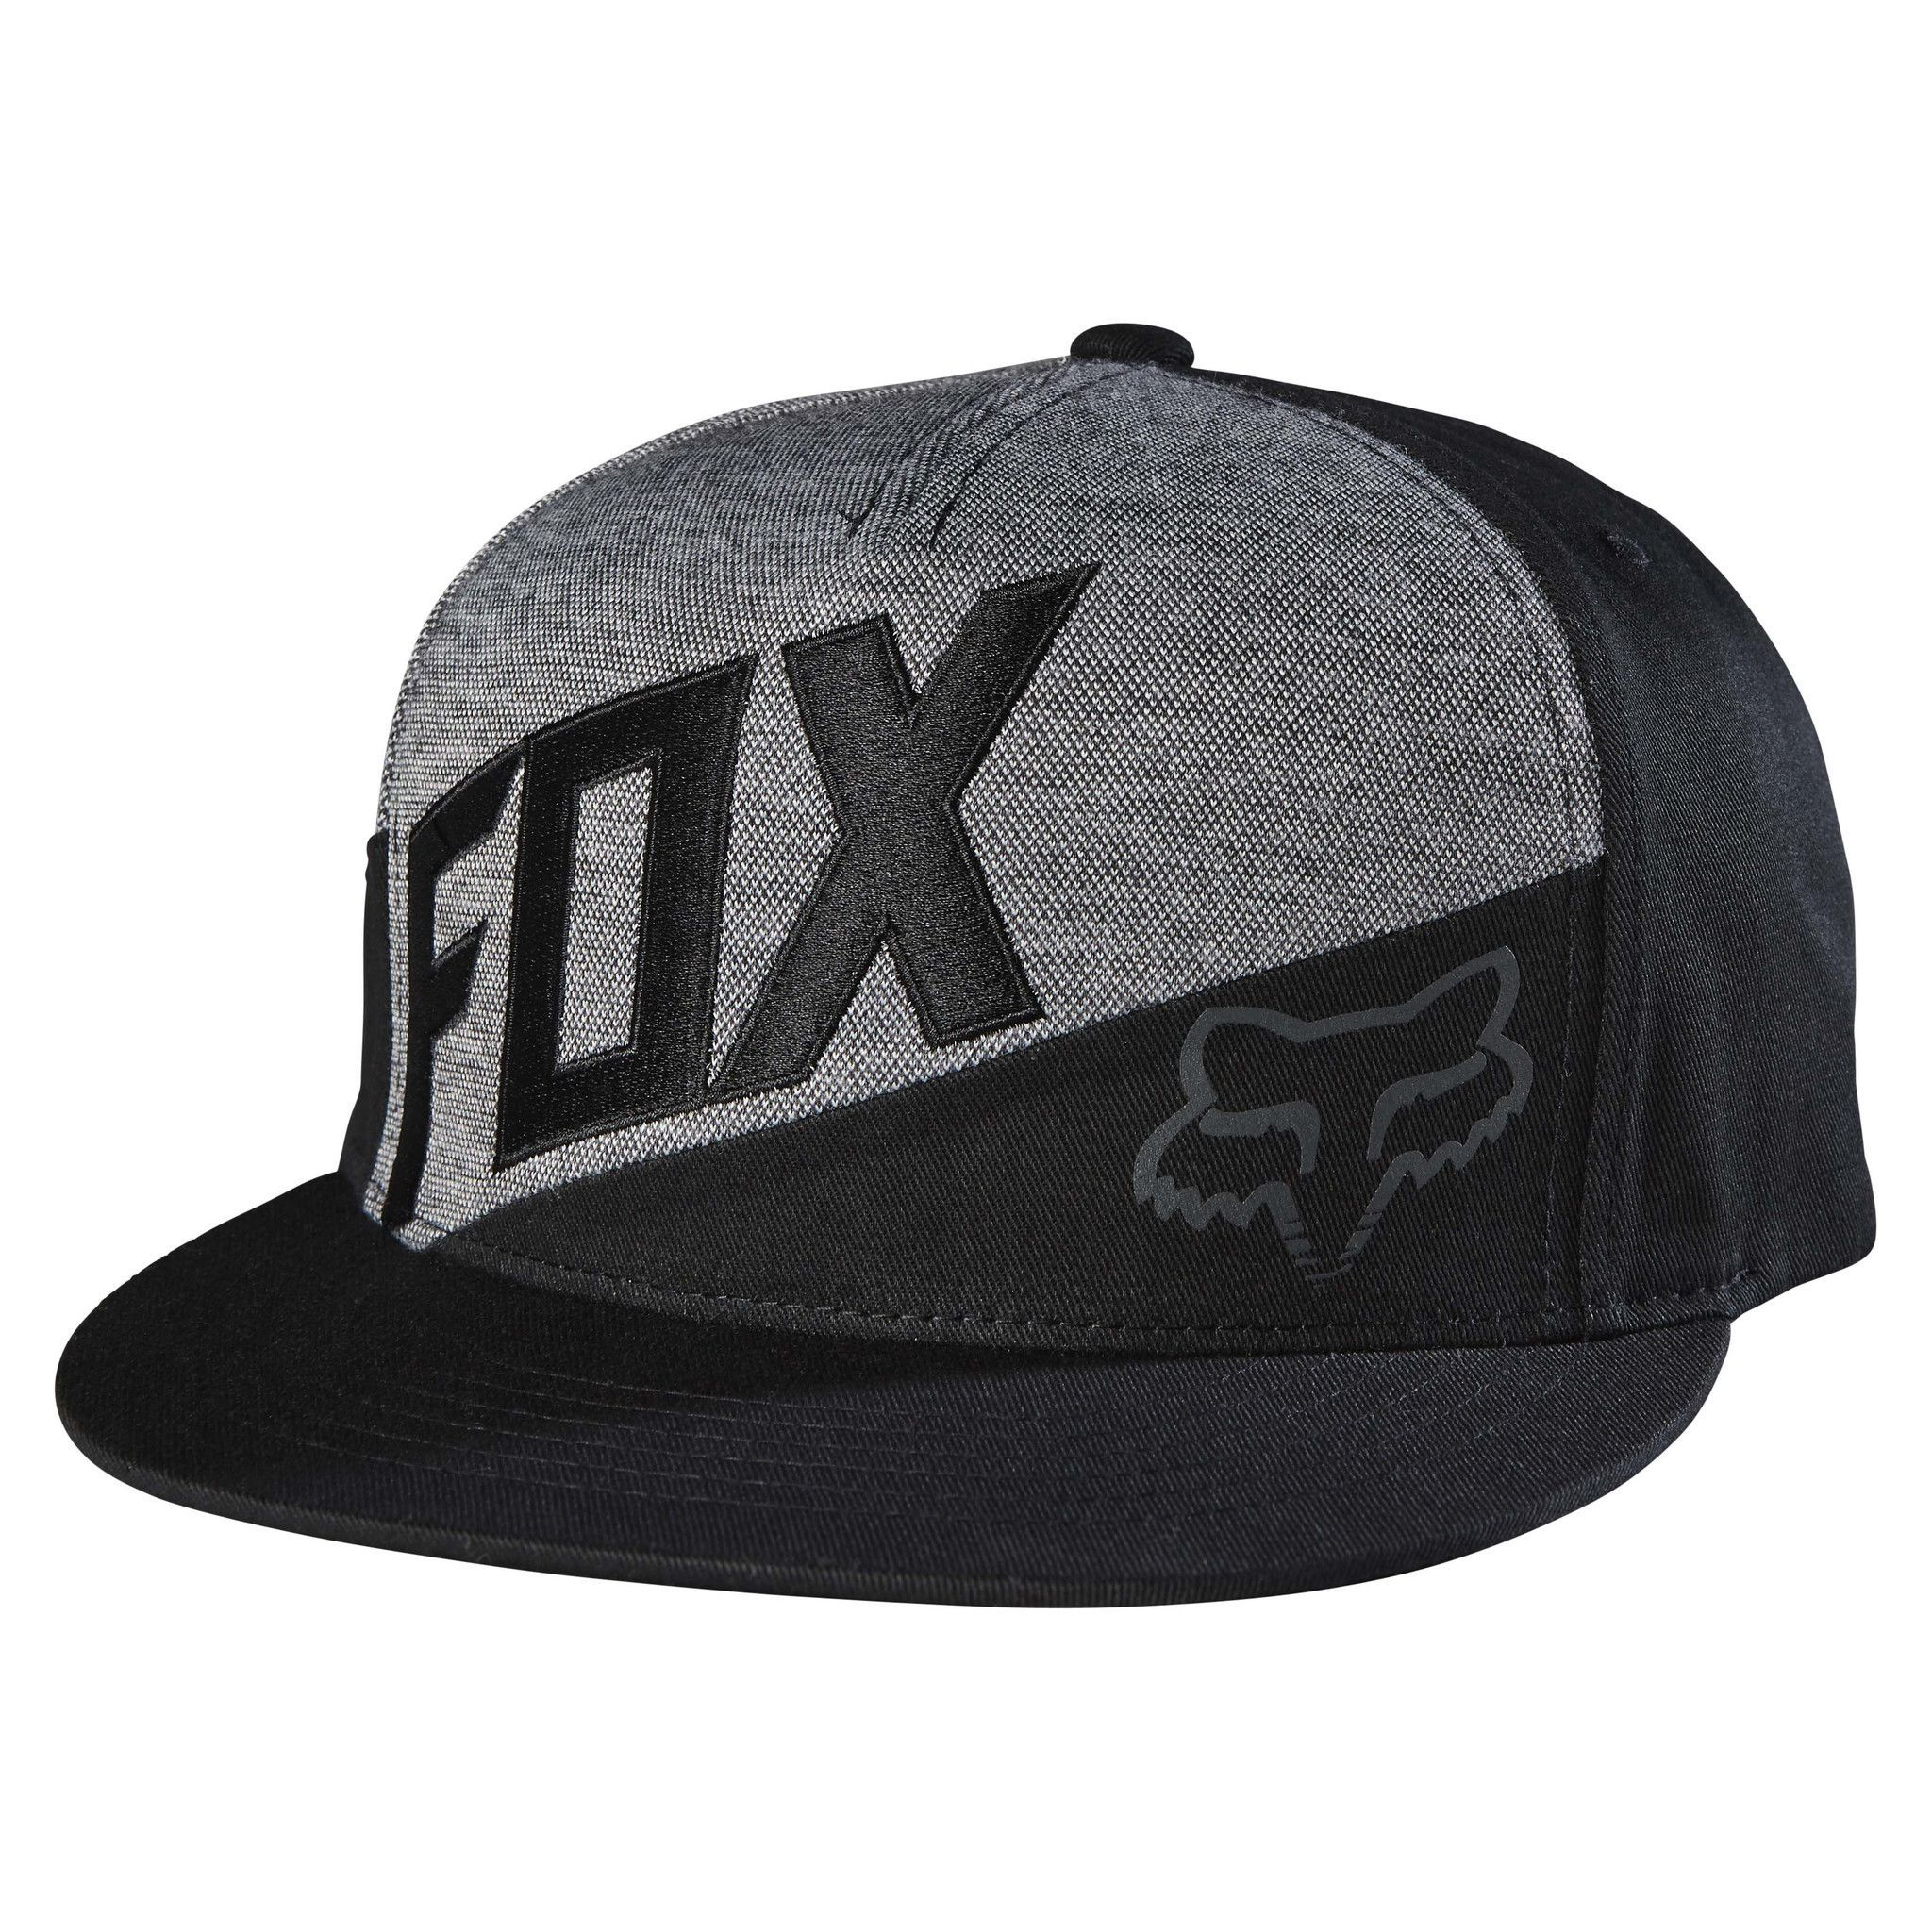 detailed look 3e24a 66413 ... france fox racing bucket hat zumiez 93bb4 a972c